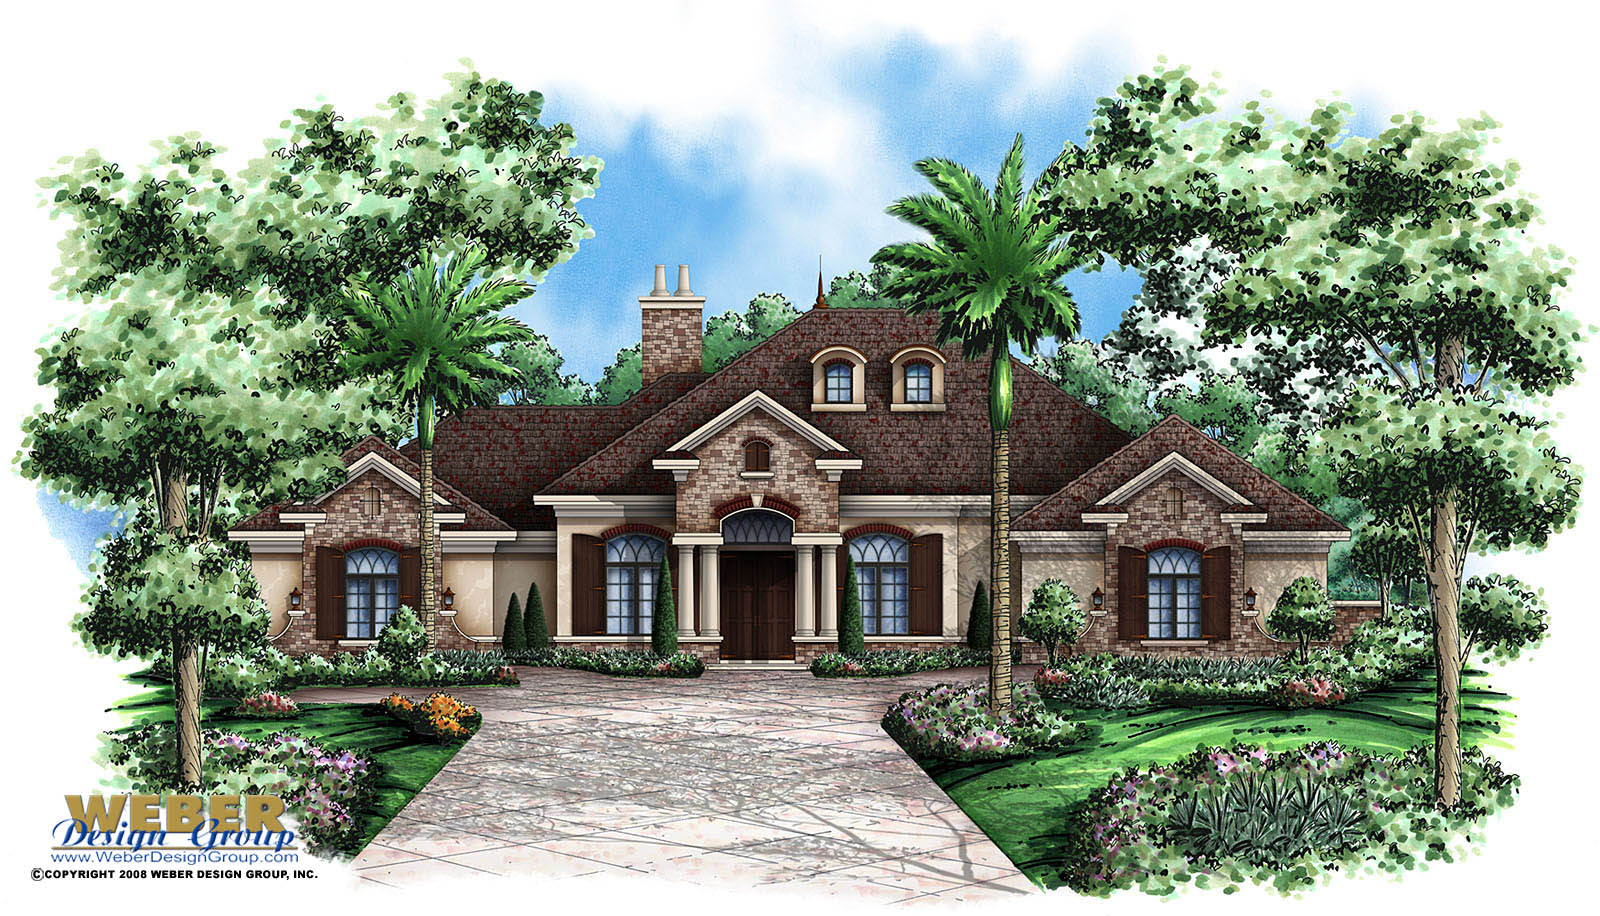 Verdelais home plan weber design group naples fl for Weber house plans